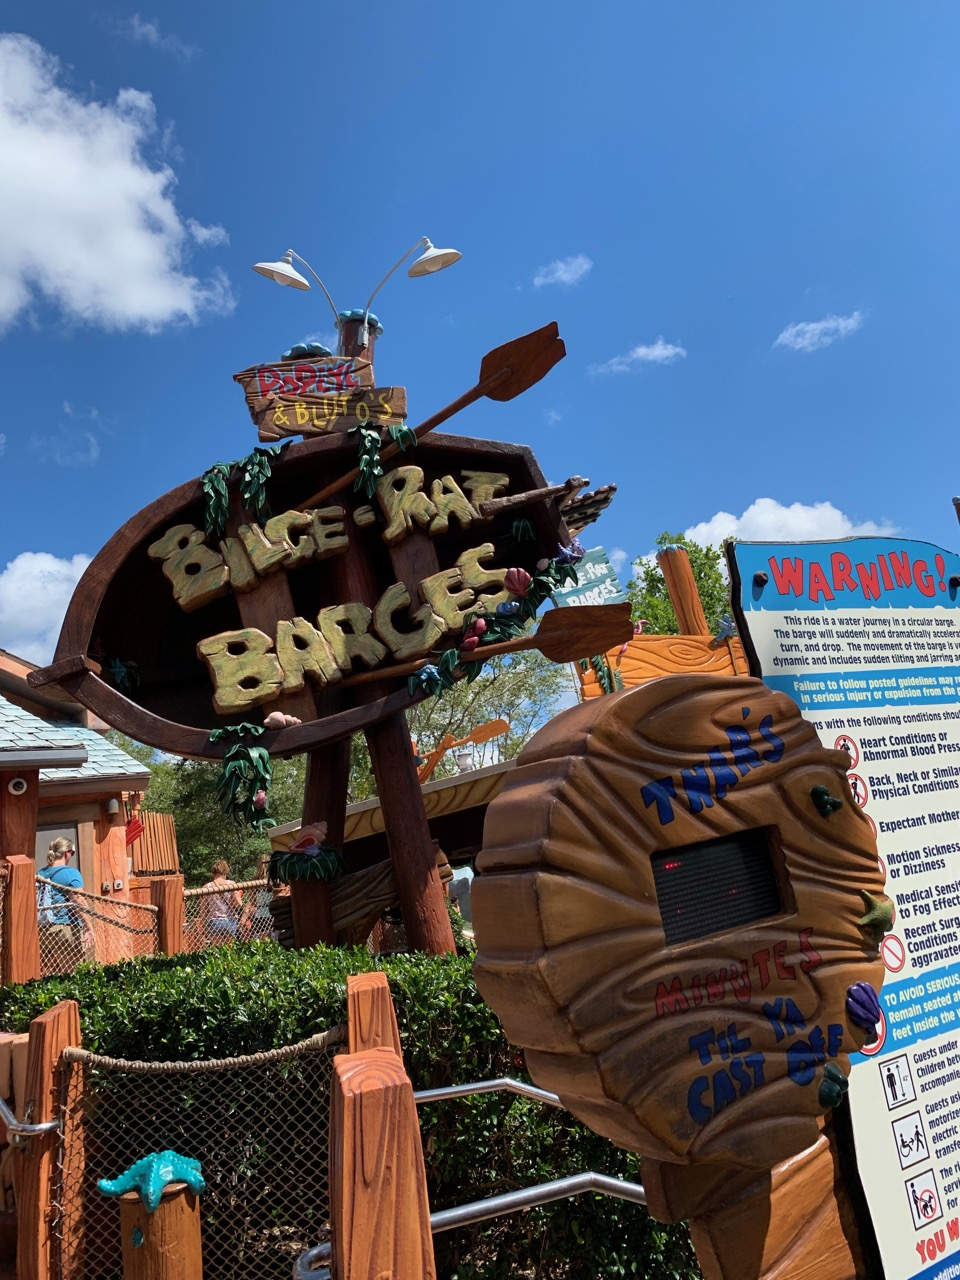 universal orlando summer 2019 trip report part 5 barges.jpeg